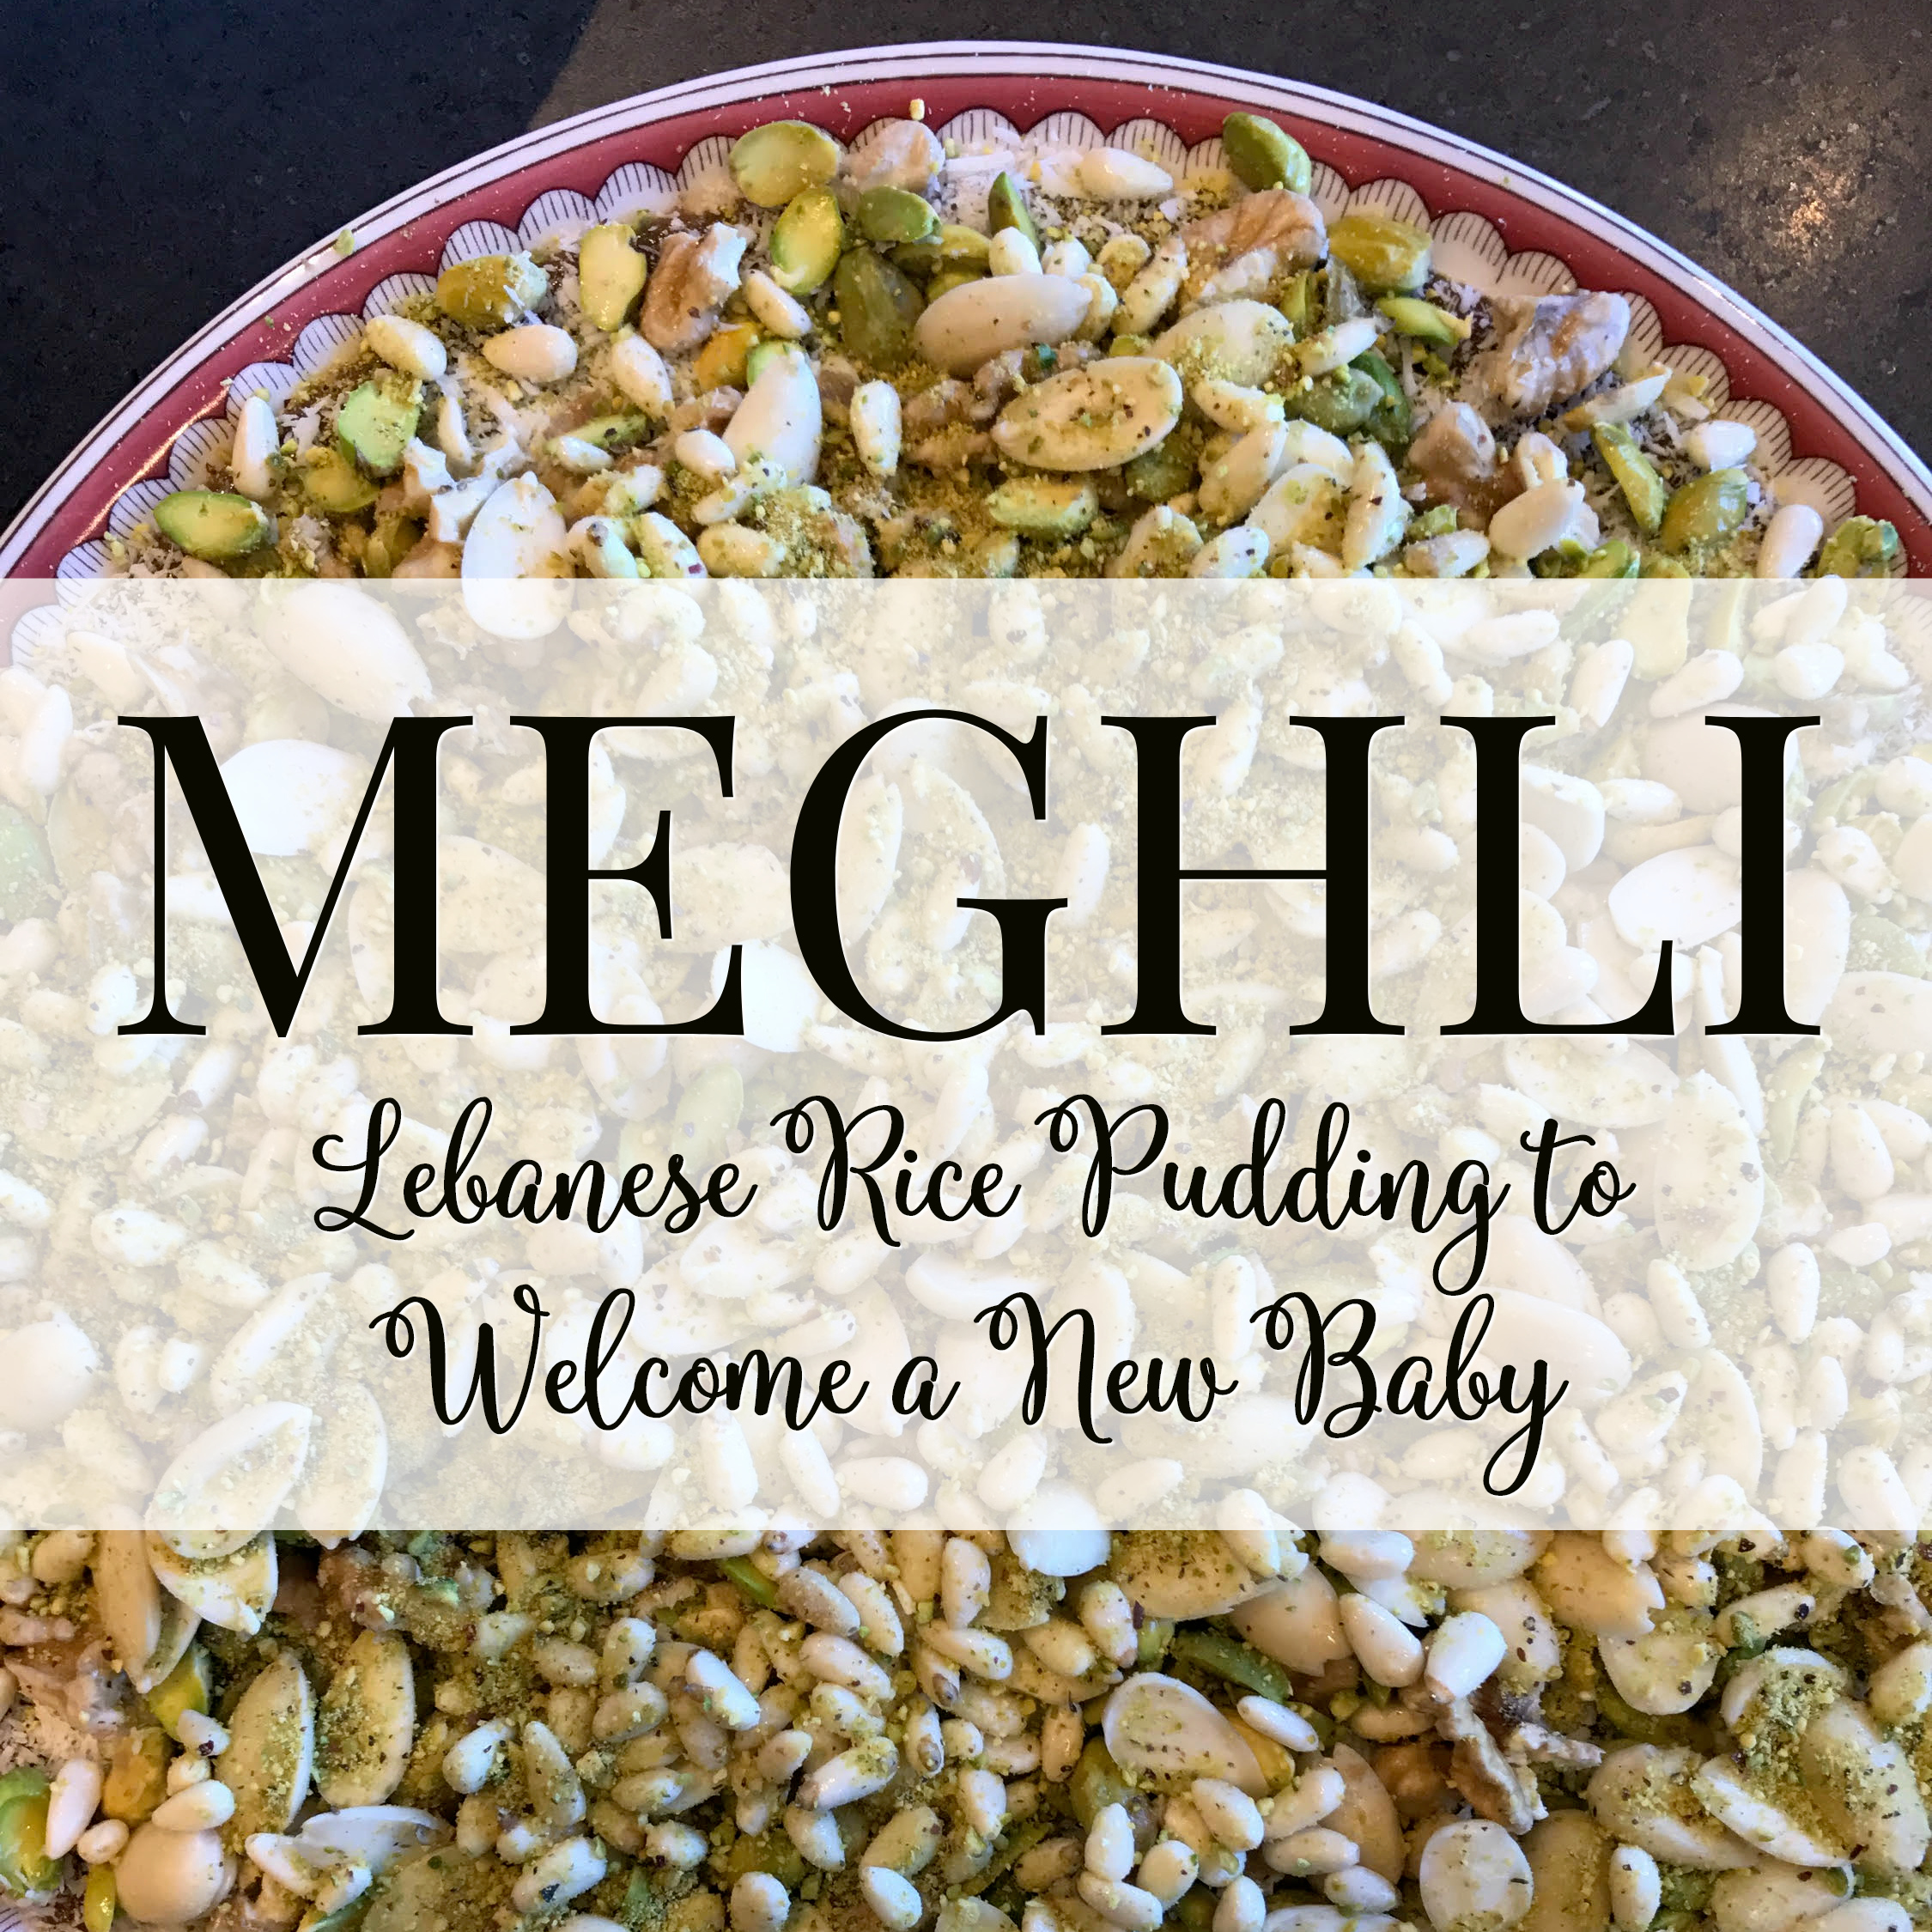 Nicole O'Neil's Meghli Recipe - Traditional Lebanese Rice Pudding to Celebrate a New Baby